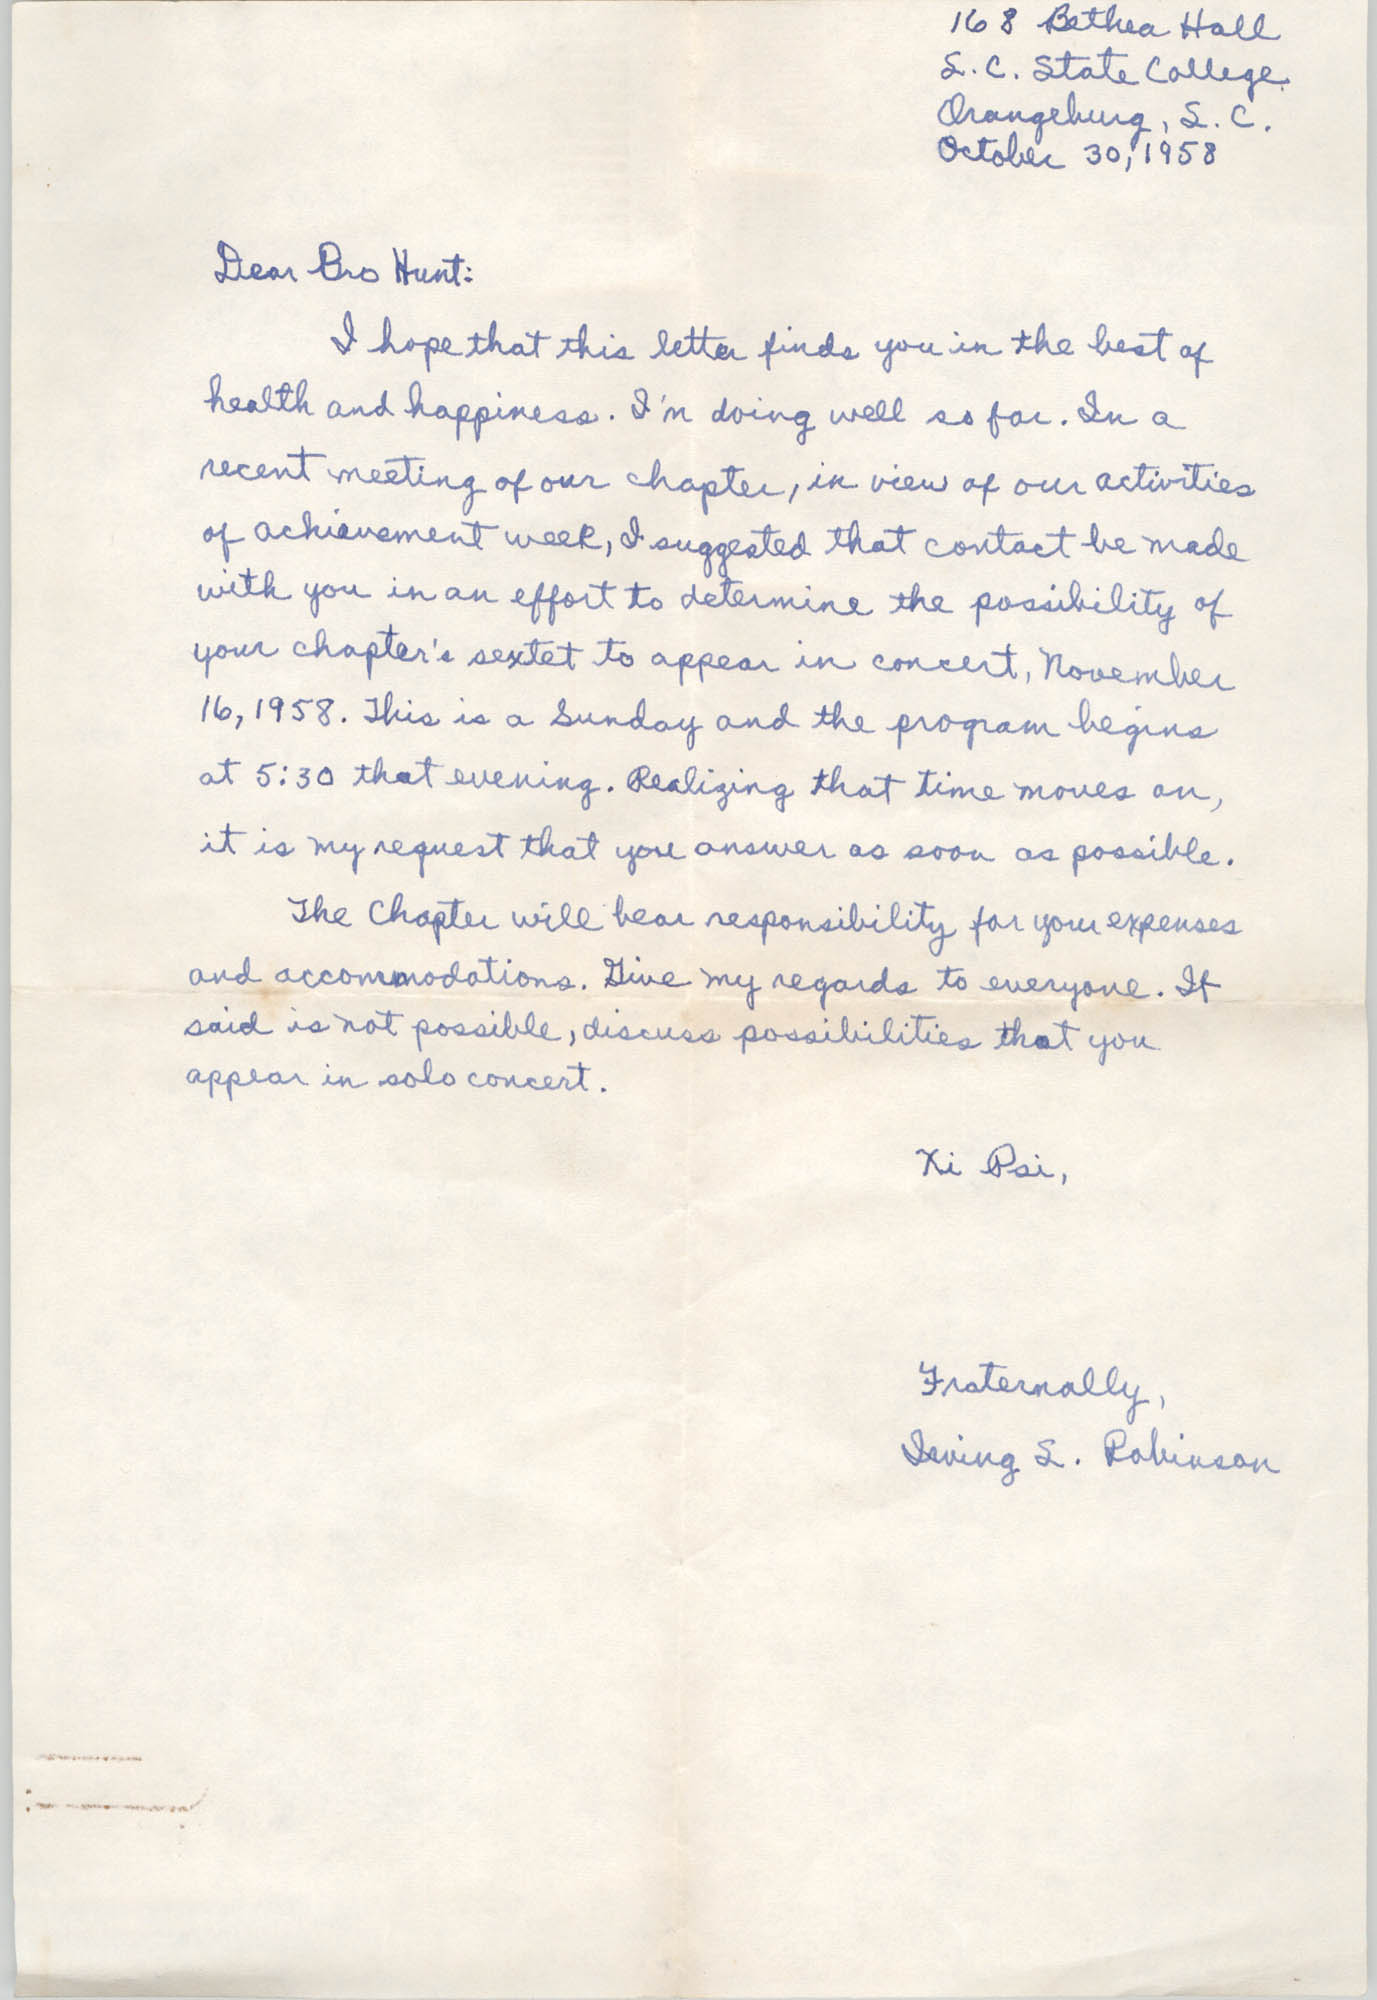 Letter from Irving L. Robinson to Eugene C. Hunt, October 30, 1958